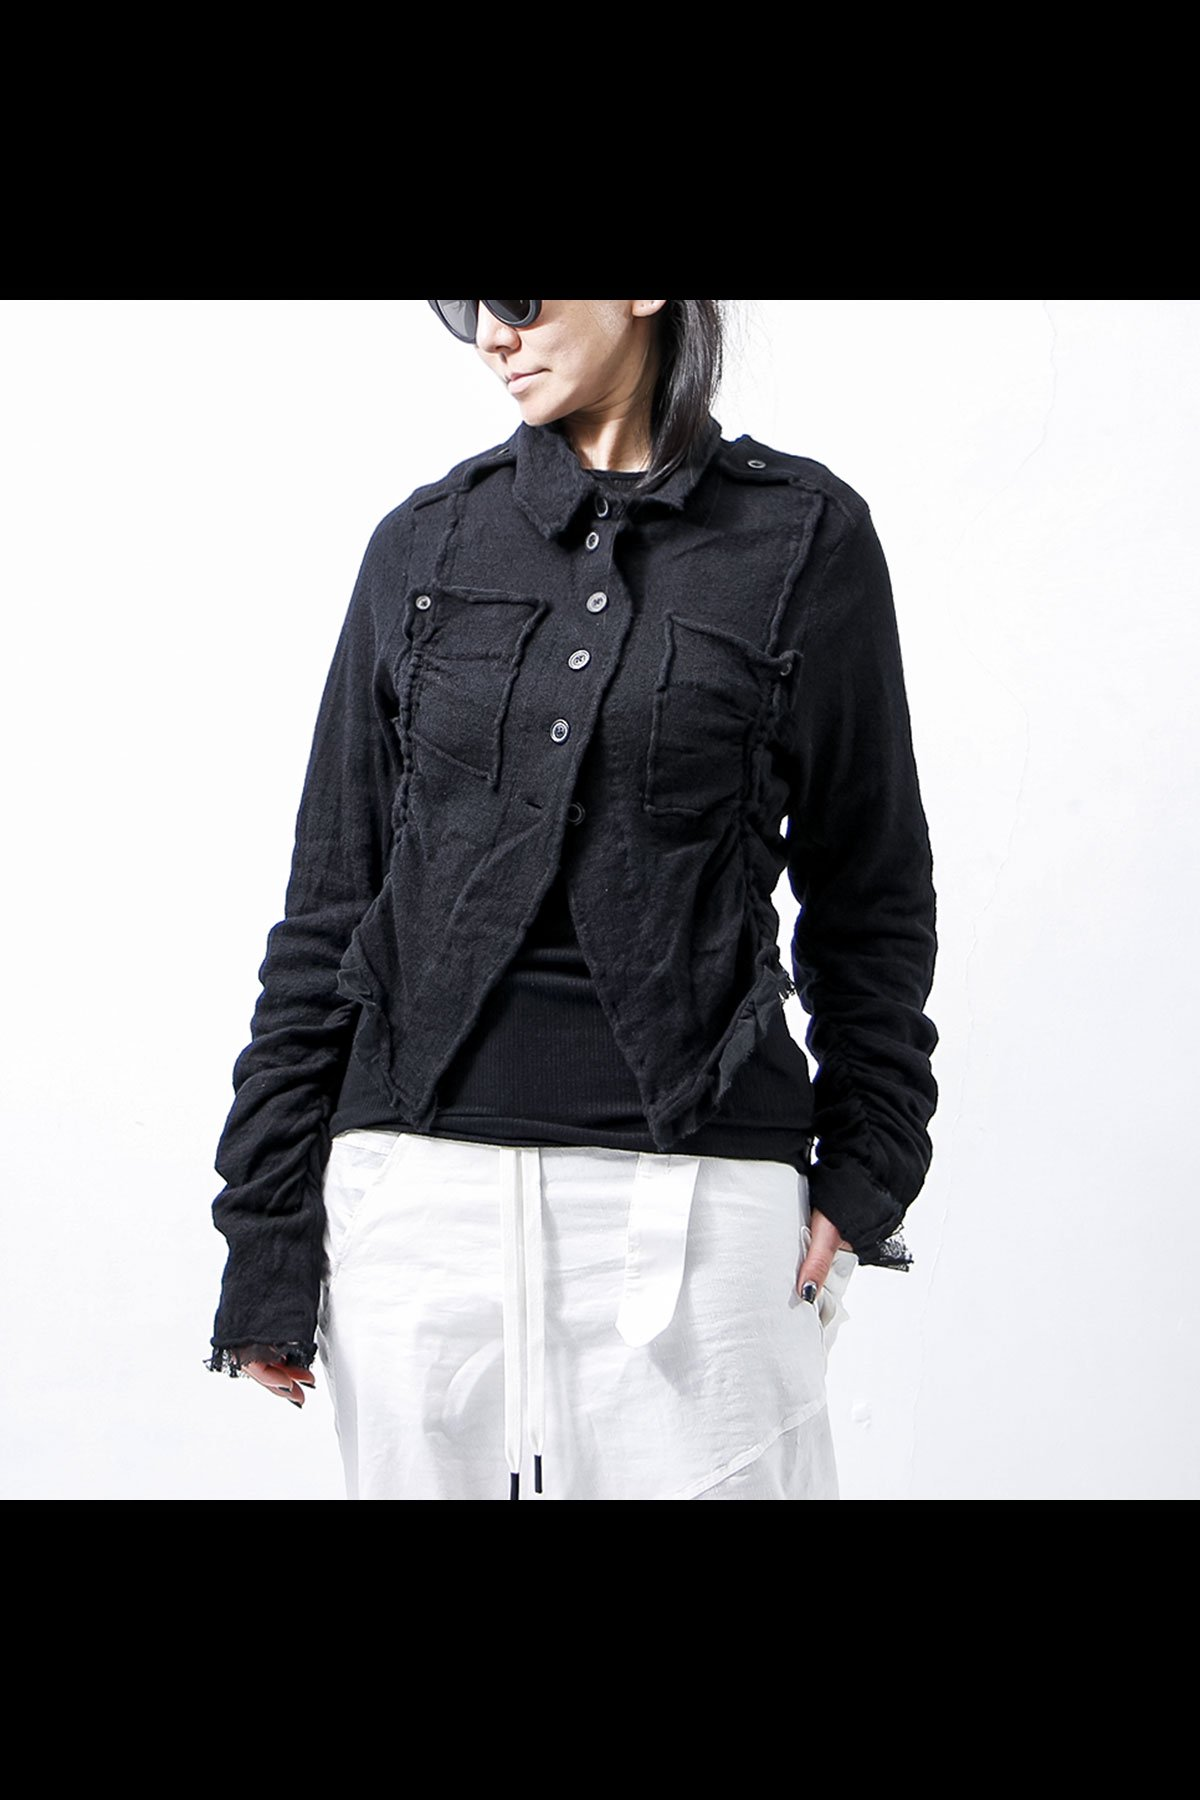 <img class='new_mark_img1' src='https://img.shop-pro.jp/img/new/icons8.gif' style='border:none;display:inline;margin:0px;padding:0px;width:auto;' />SPRING KNIT SHORT JACKET 268 7103_BLACK